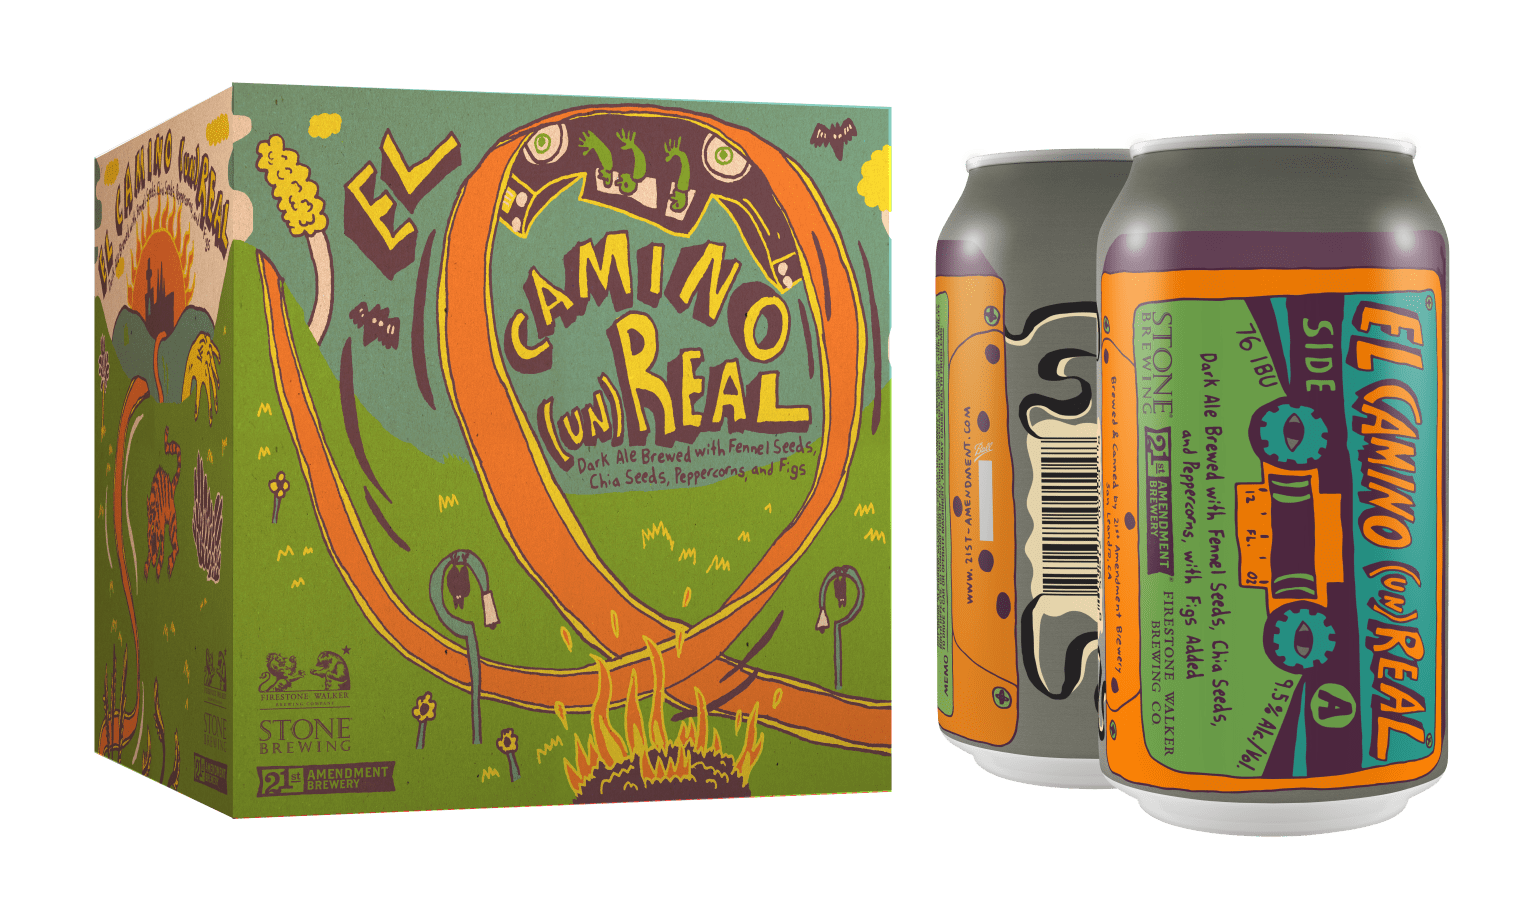 El Camino (un)Royal Can & Box Design - 21st Amendment Brewery